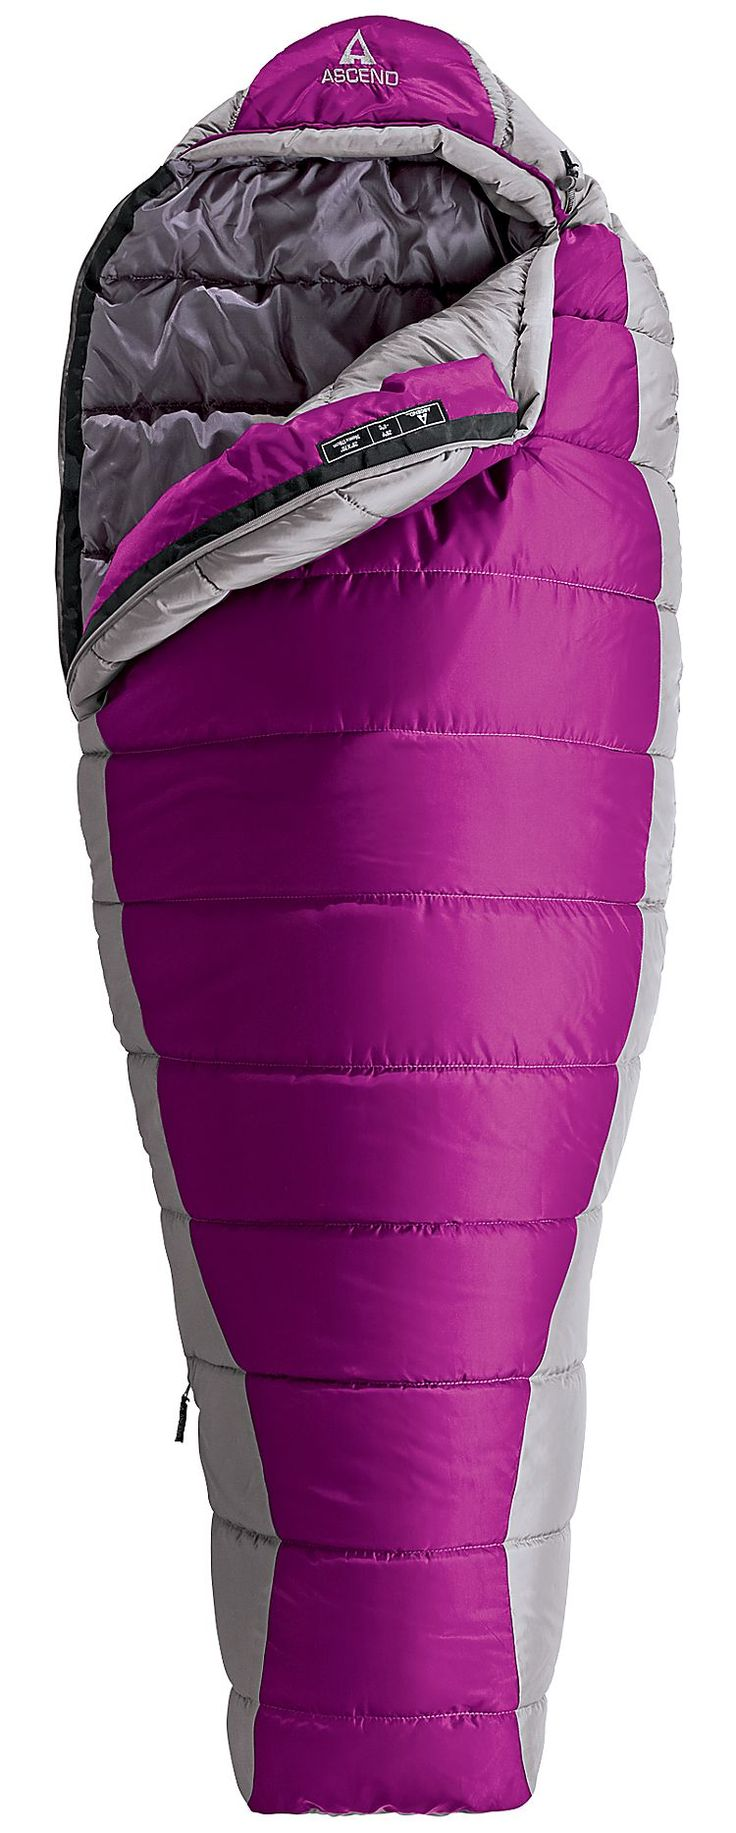 130 best sleeping bags images on pinterest camping gear camping